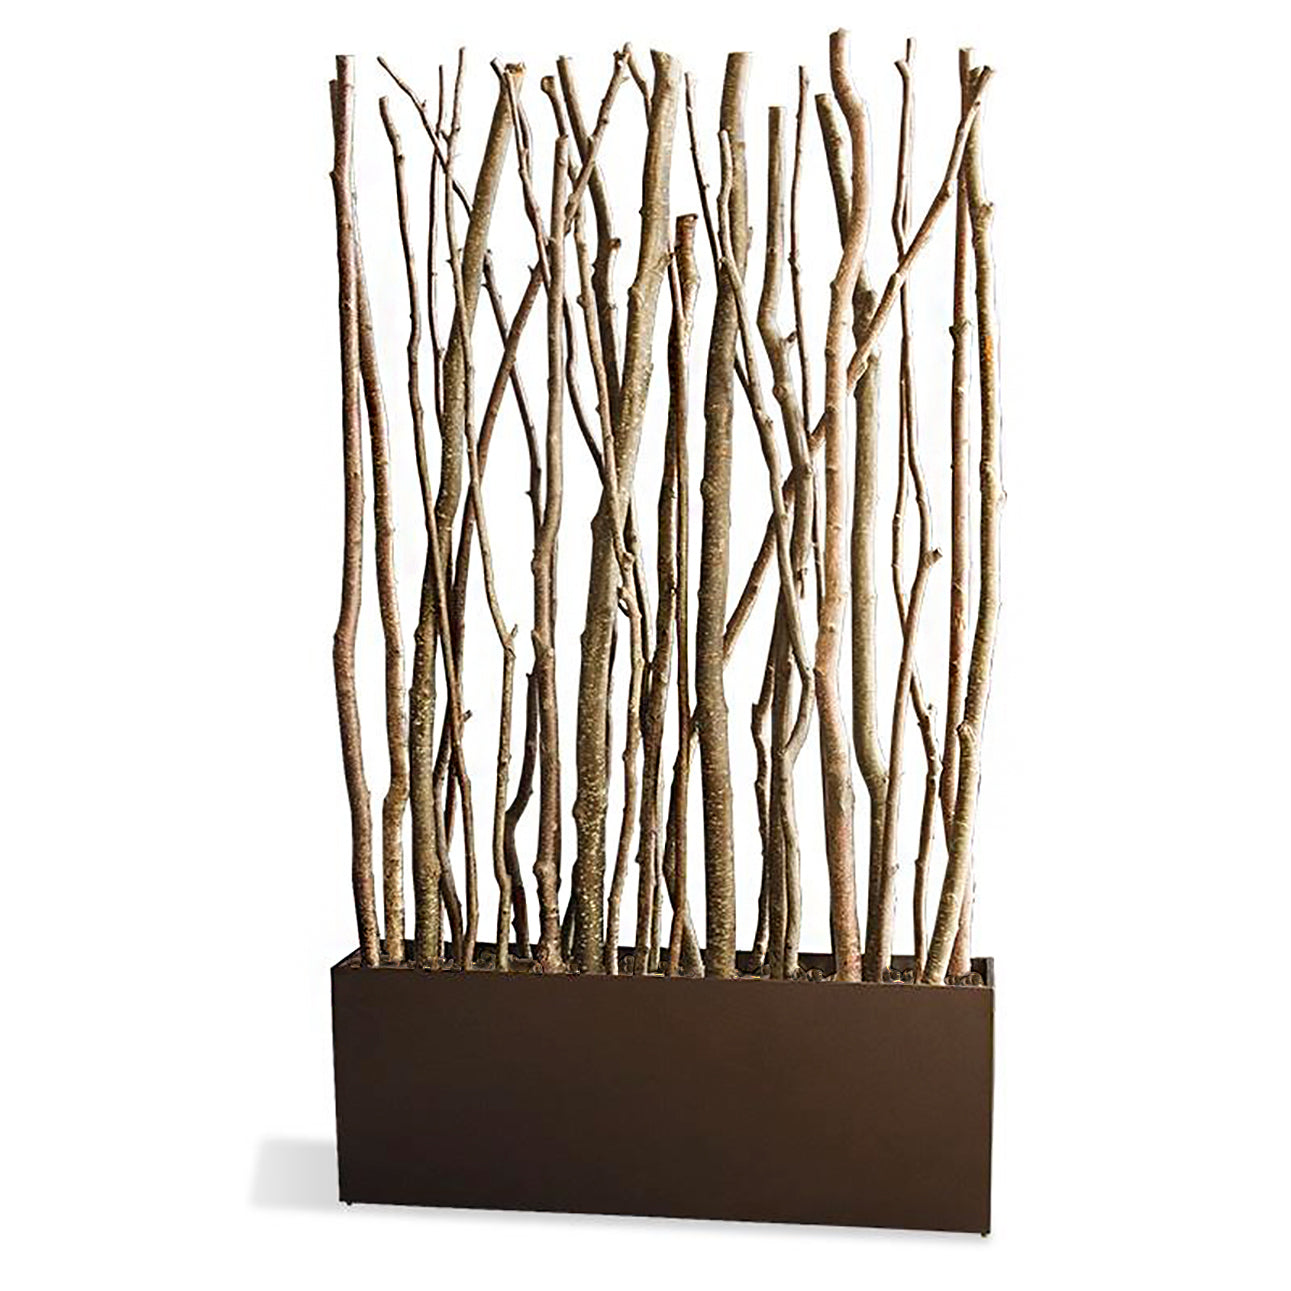 Alder Poles in Rectangle Planter